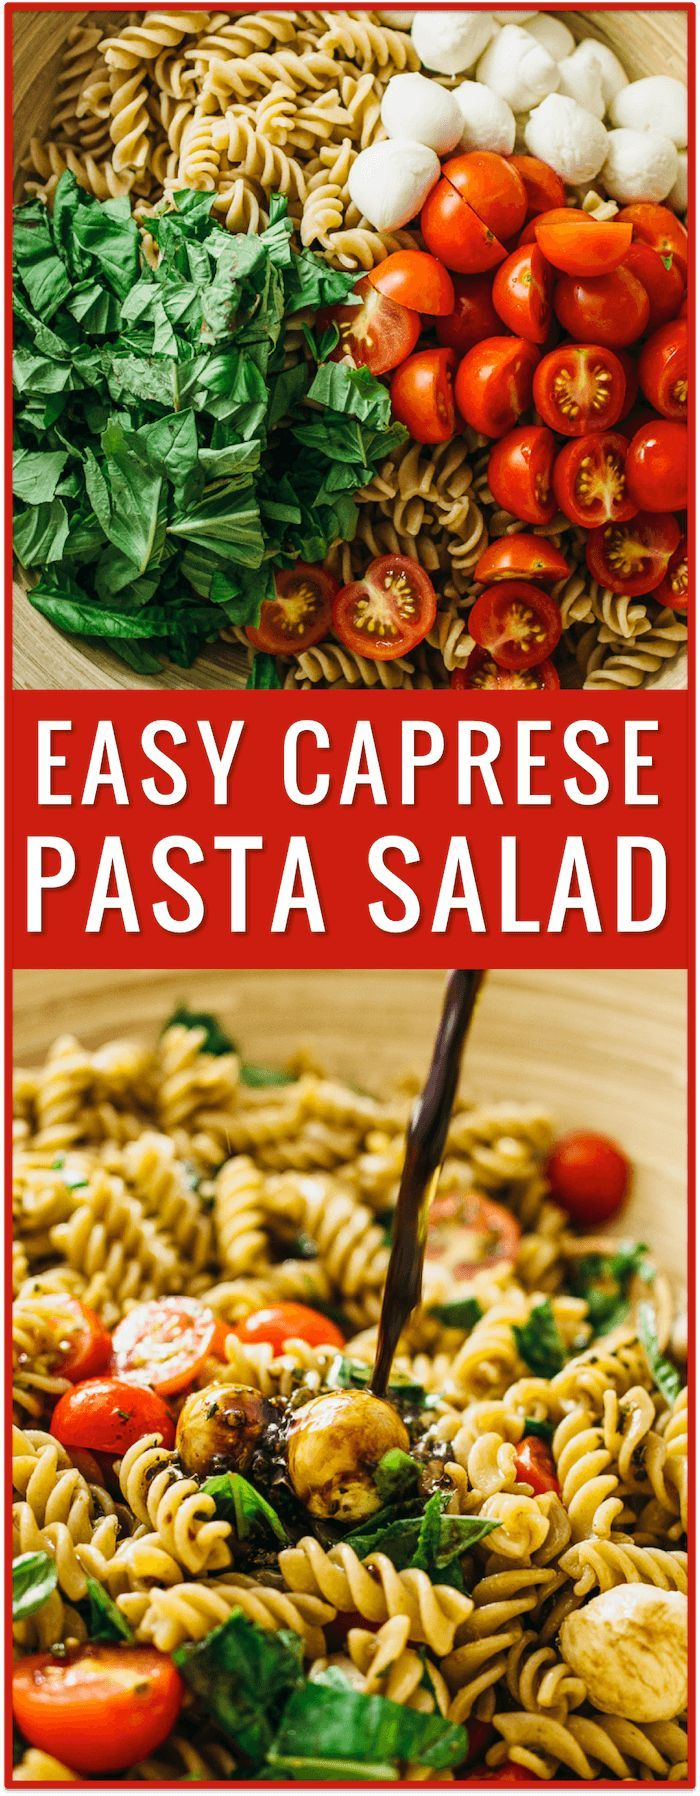 easy caprese pasta salad recipe, caprese salad, caprese appetizer, cherry tomatoes, grape tomatoes, chopped caprese salad, ingredients, tomato, mozzarella cheese, fresh basil, lunch, dinner, side dish, idea via @savory_tooth